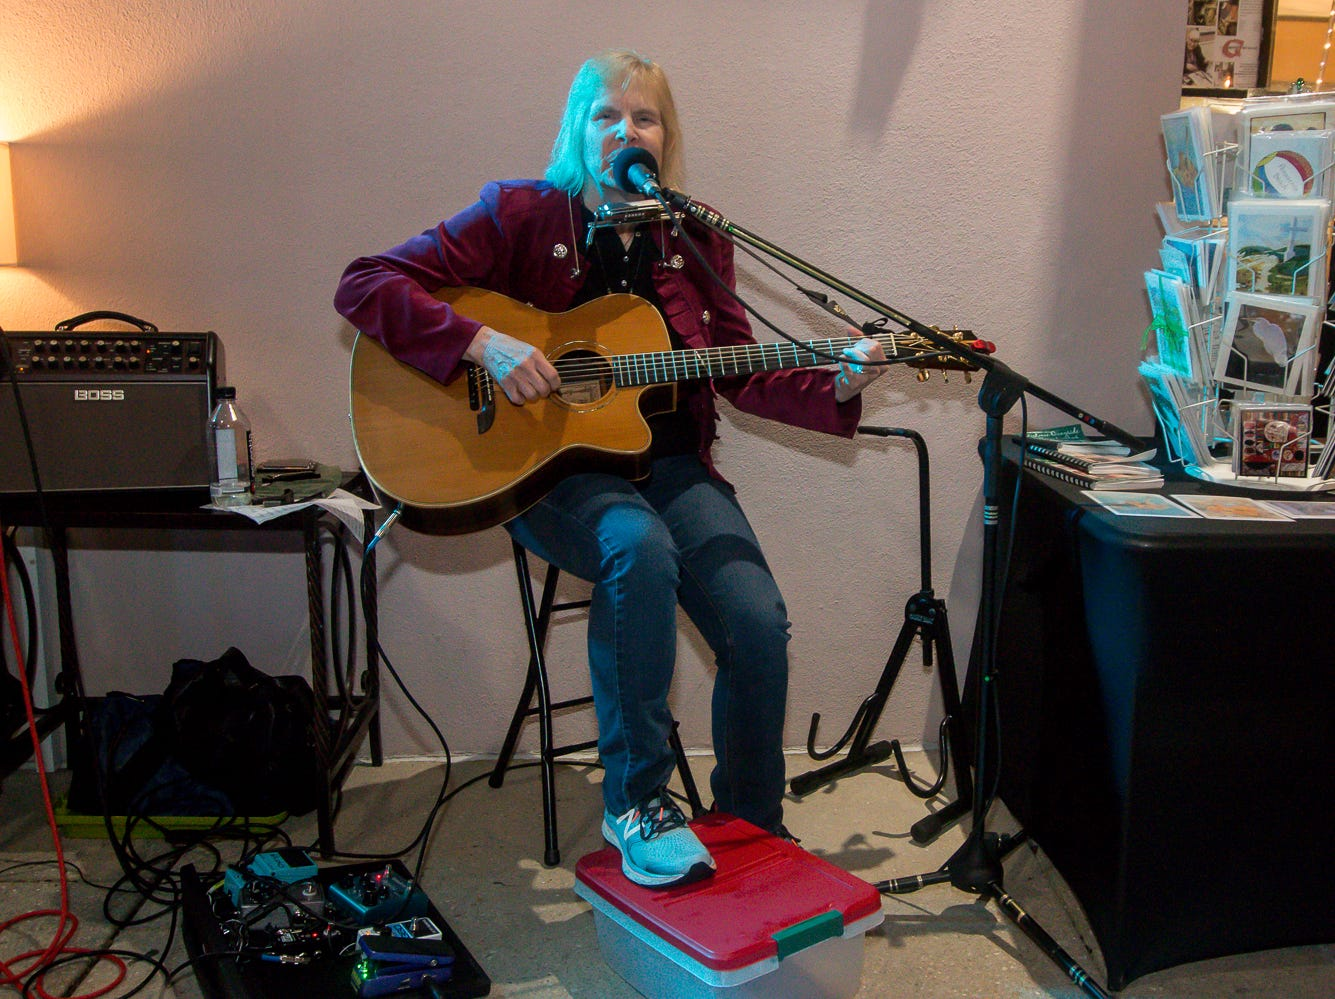 Joan Hamilton performs outside of Quayside Art Gallery during Gallery Night on Friday, February 22, 2019.